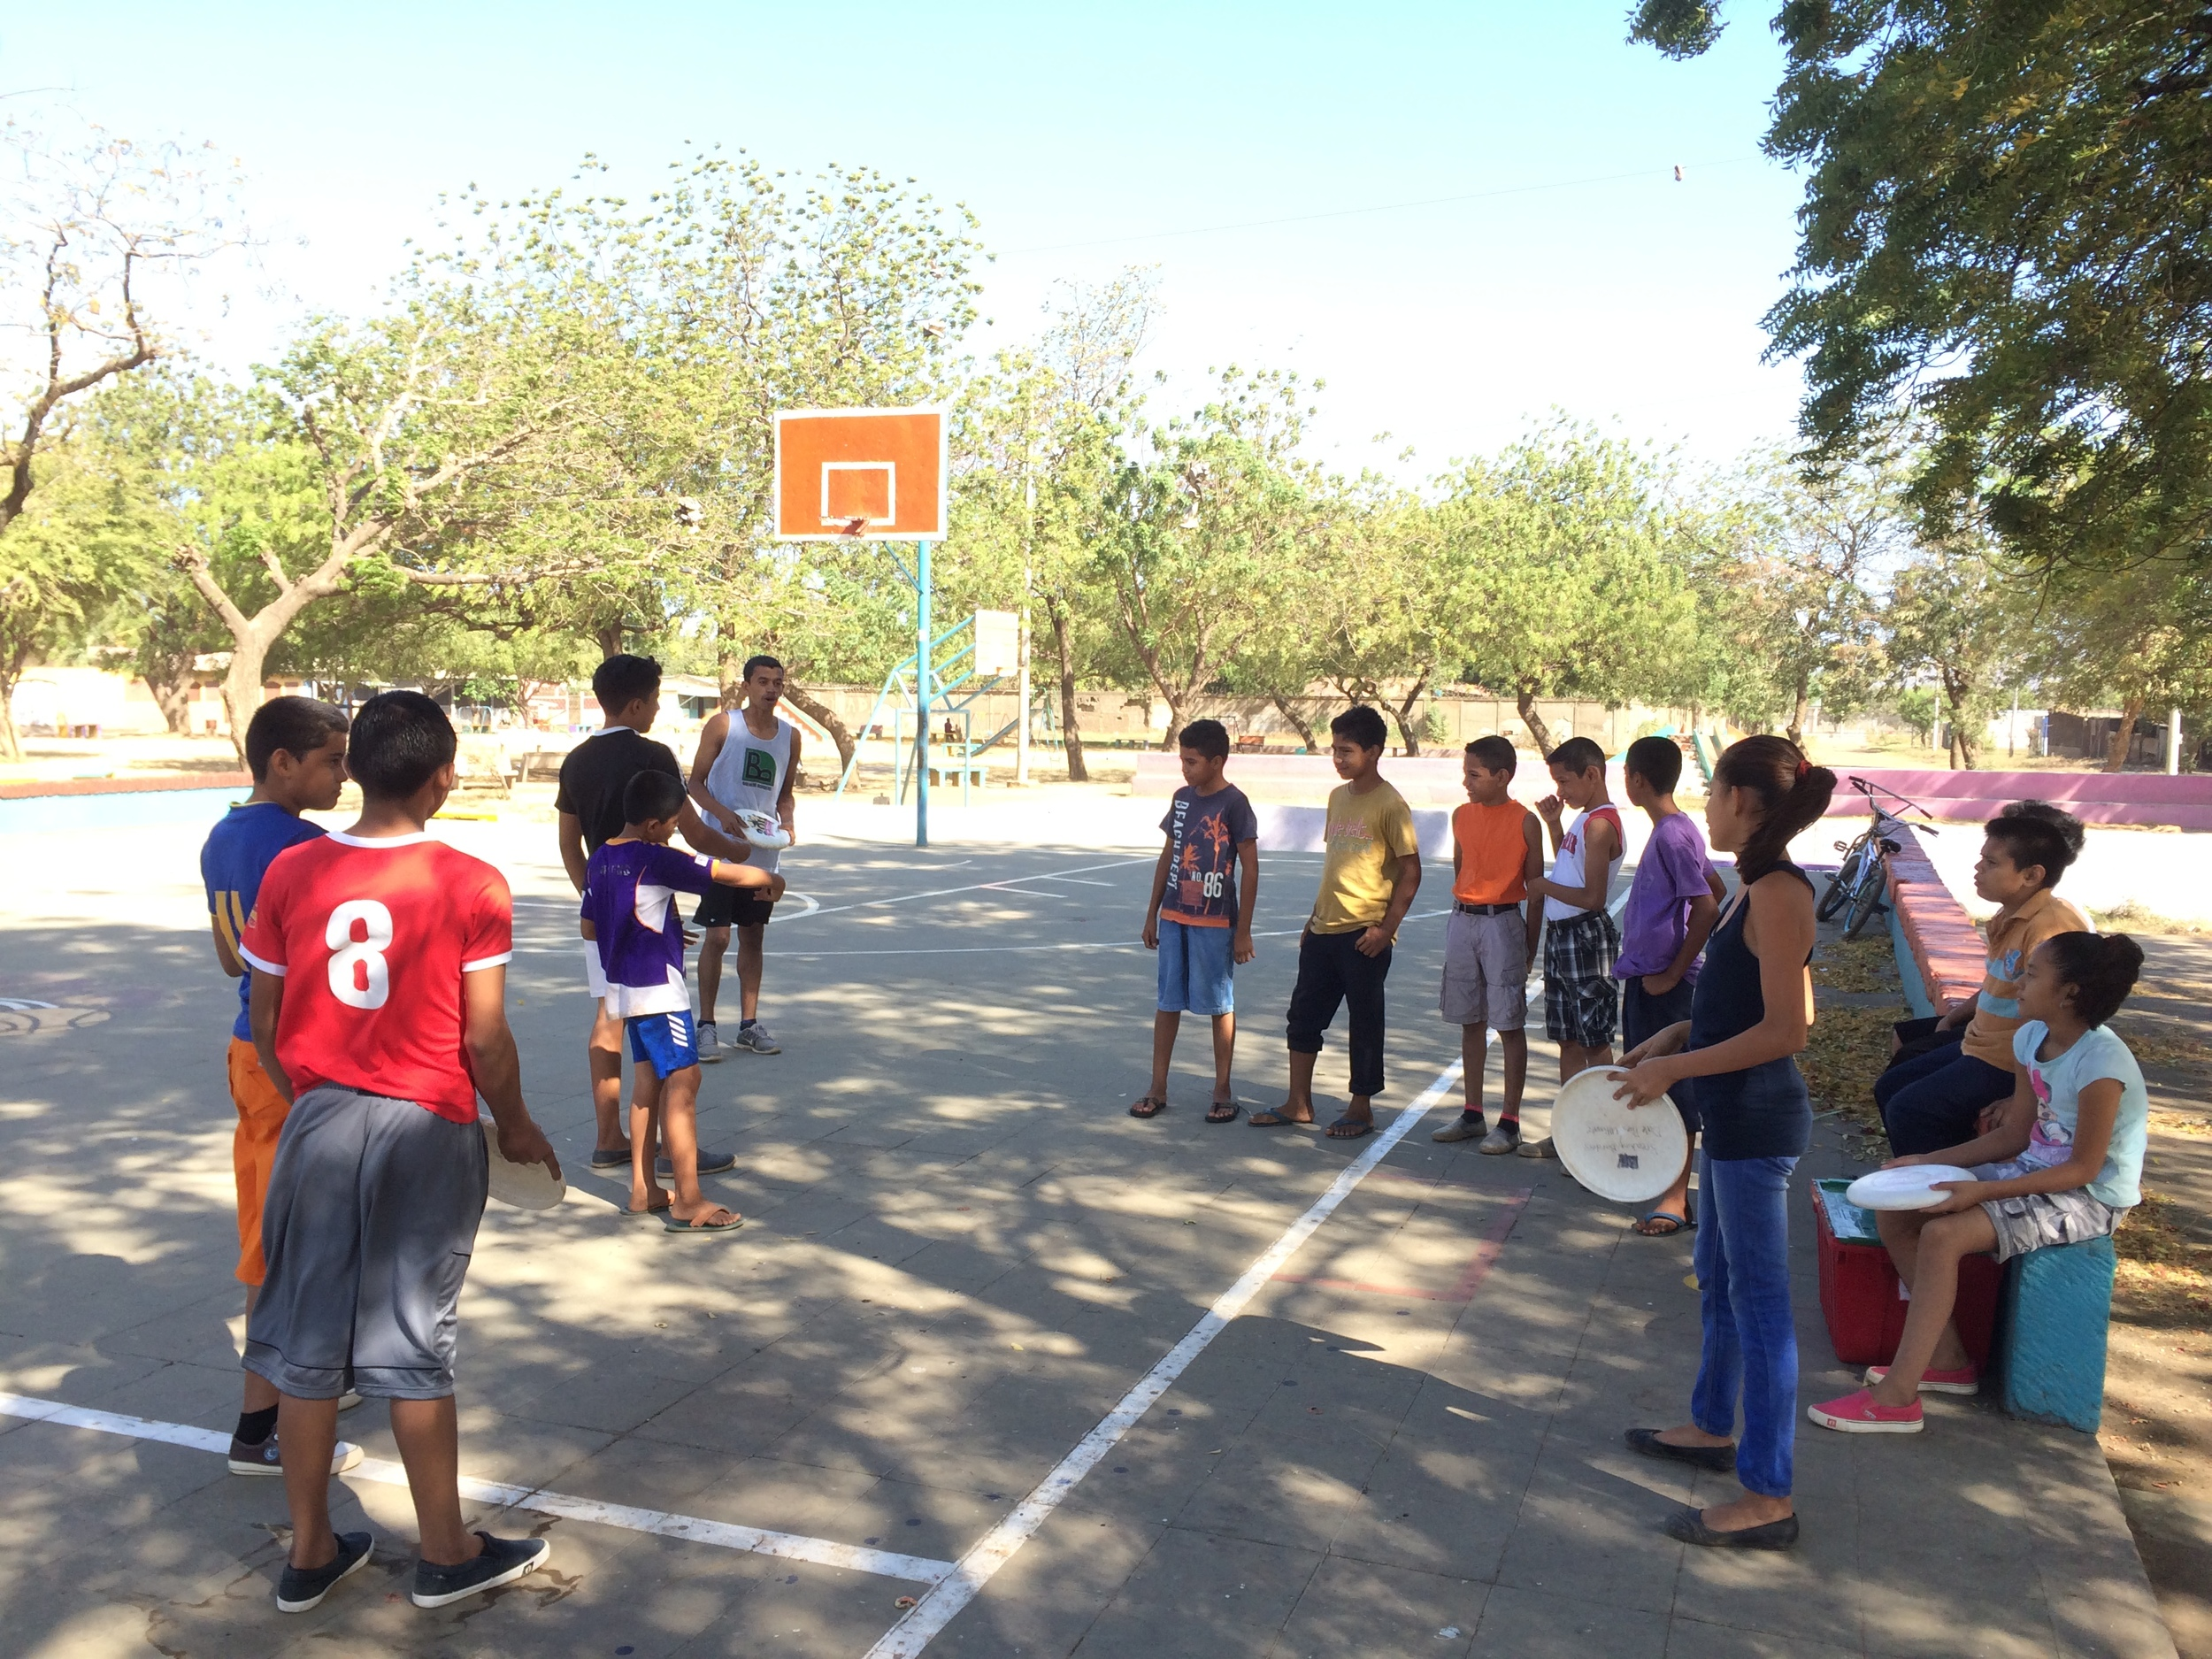 The kids in Ciudad Sandino listening to Zeke give a lesson on throwing.